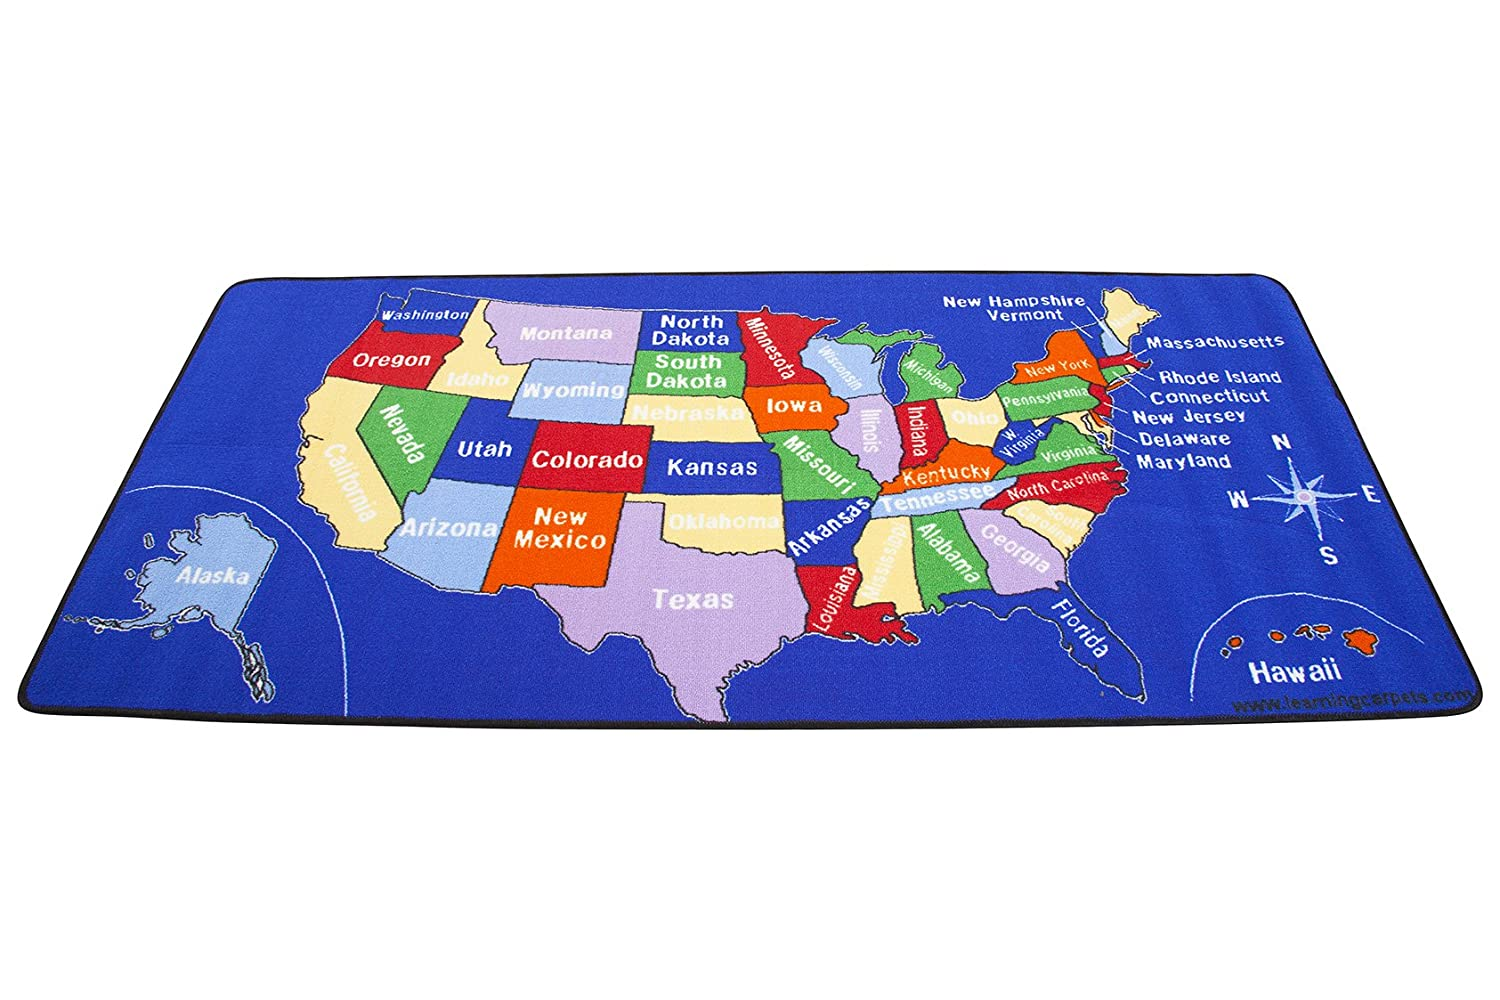 Amazoncom Learning Carpets US Map Carpet LC Toys Games - Us photo map mat